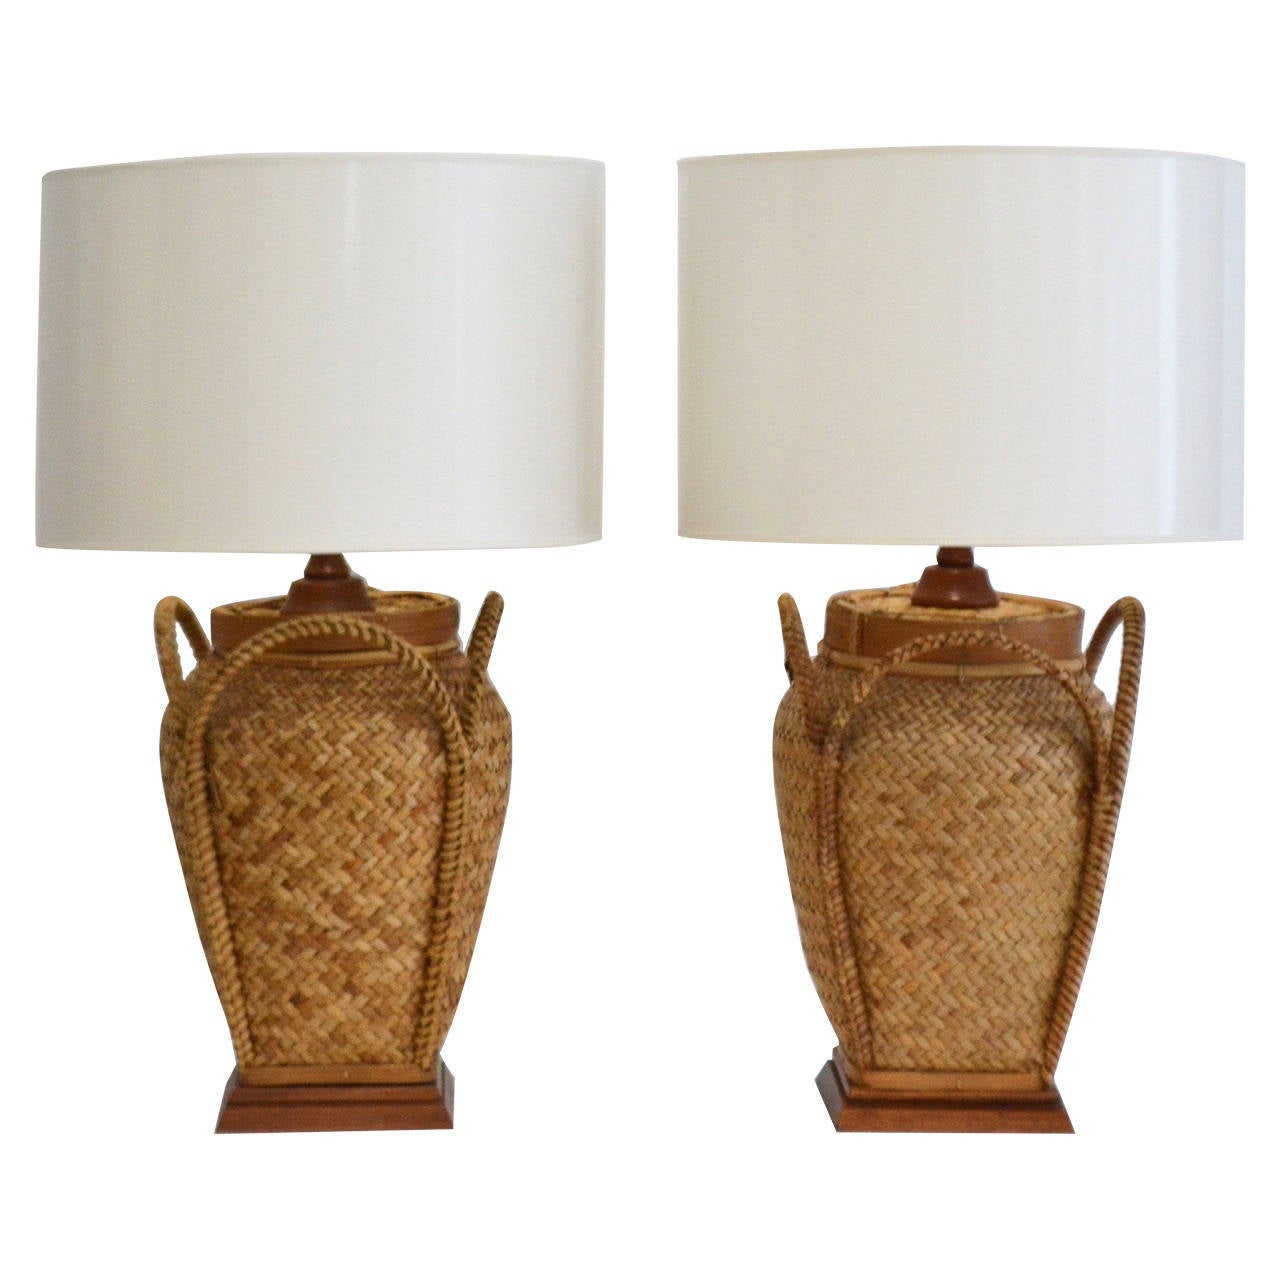 Woven Basket Lamp : Pair of woven rattan basket table lamps at stdibs